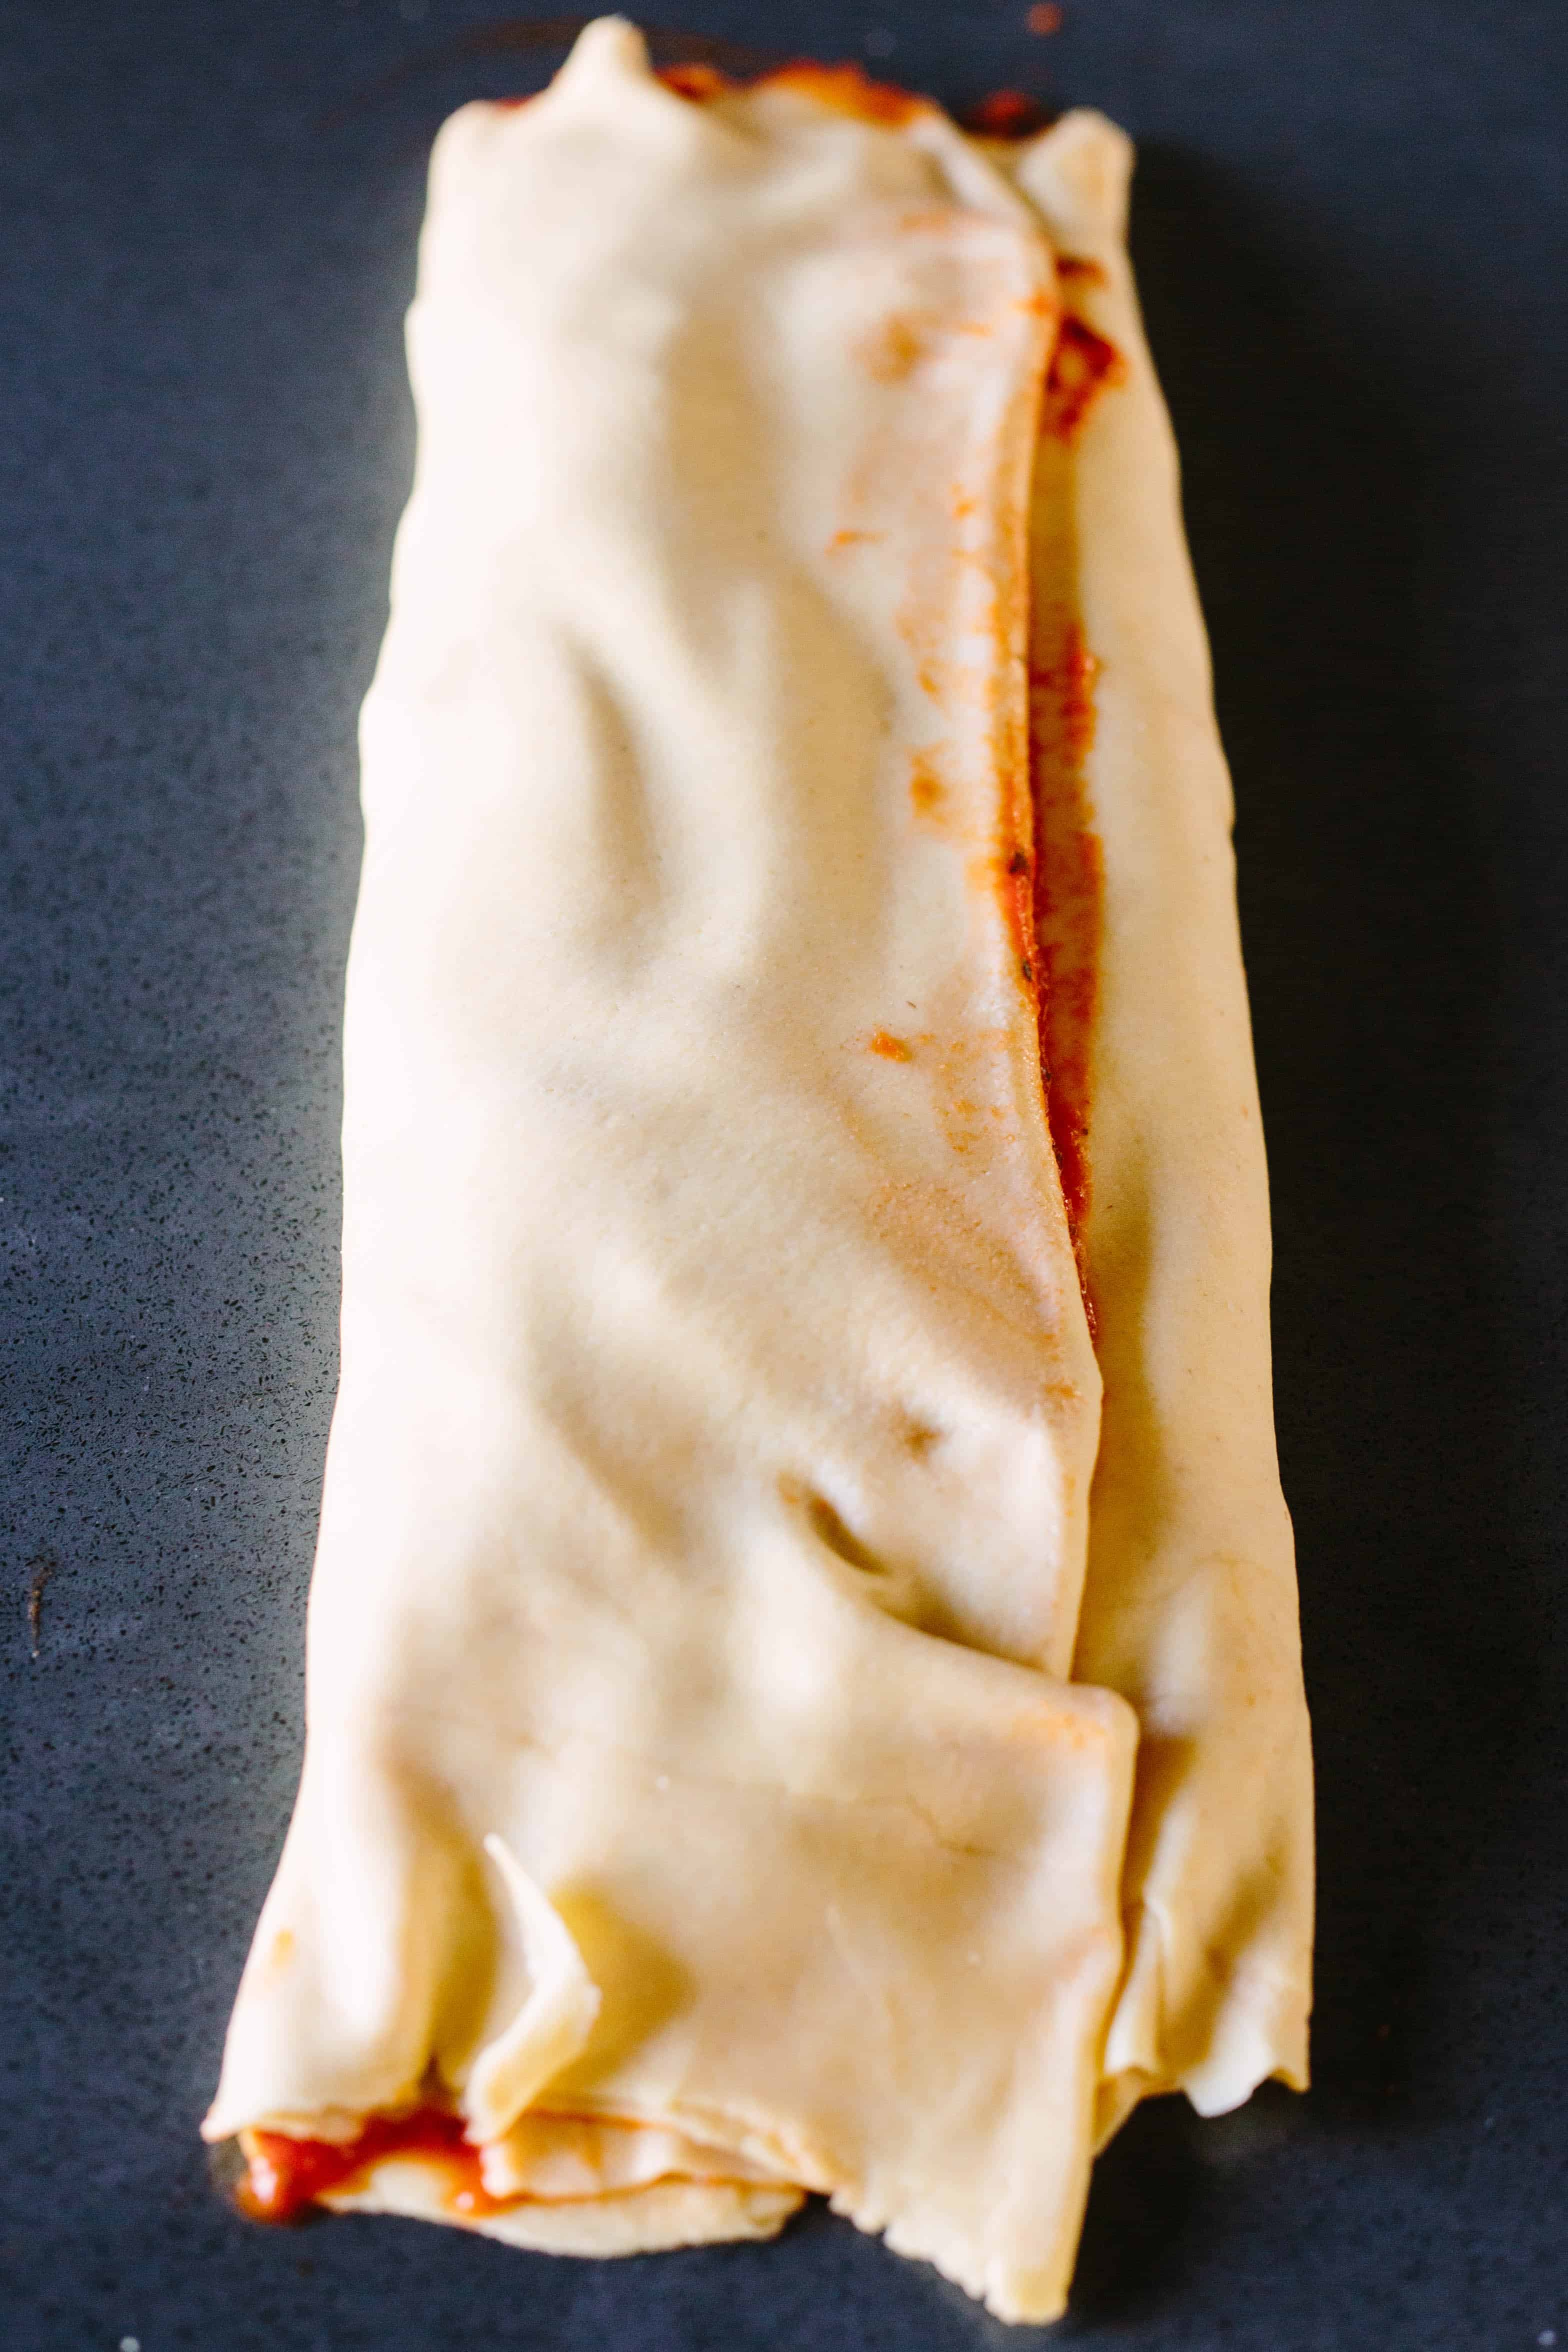 Folding up bread dough layered with cheese and pizza sauce like an envelope.